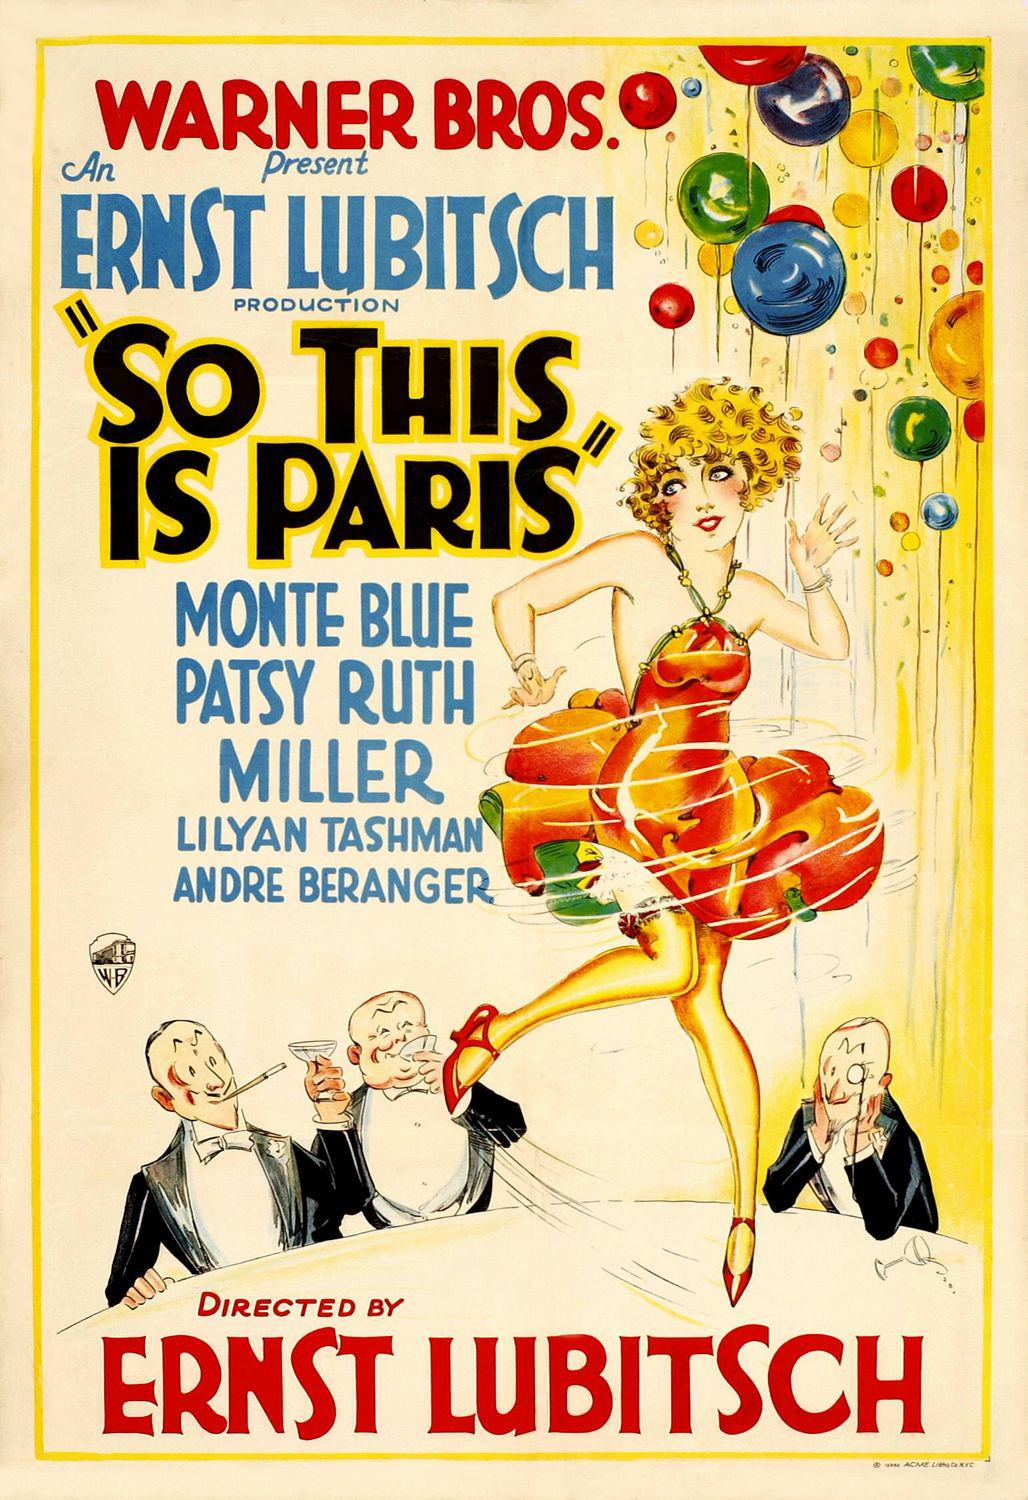 Film old Warner Bros poster - So this is Paris - 1926 - An Ernst Lubitsch production So this is Paris - Monte Blue - Patsy Ruth Miller - Lilyan Tashman - Andre Beranger